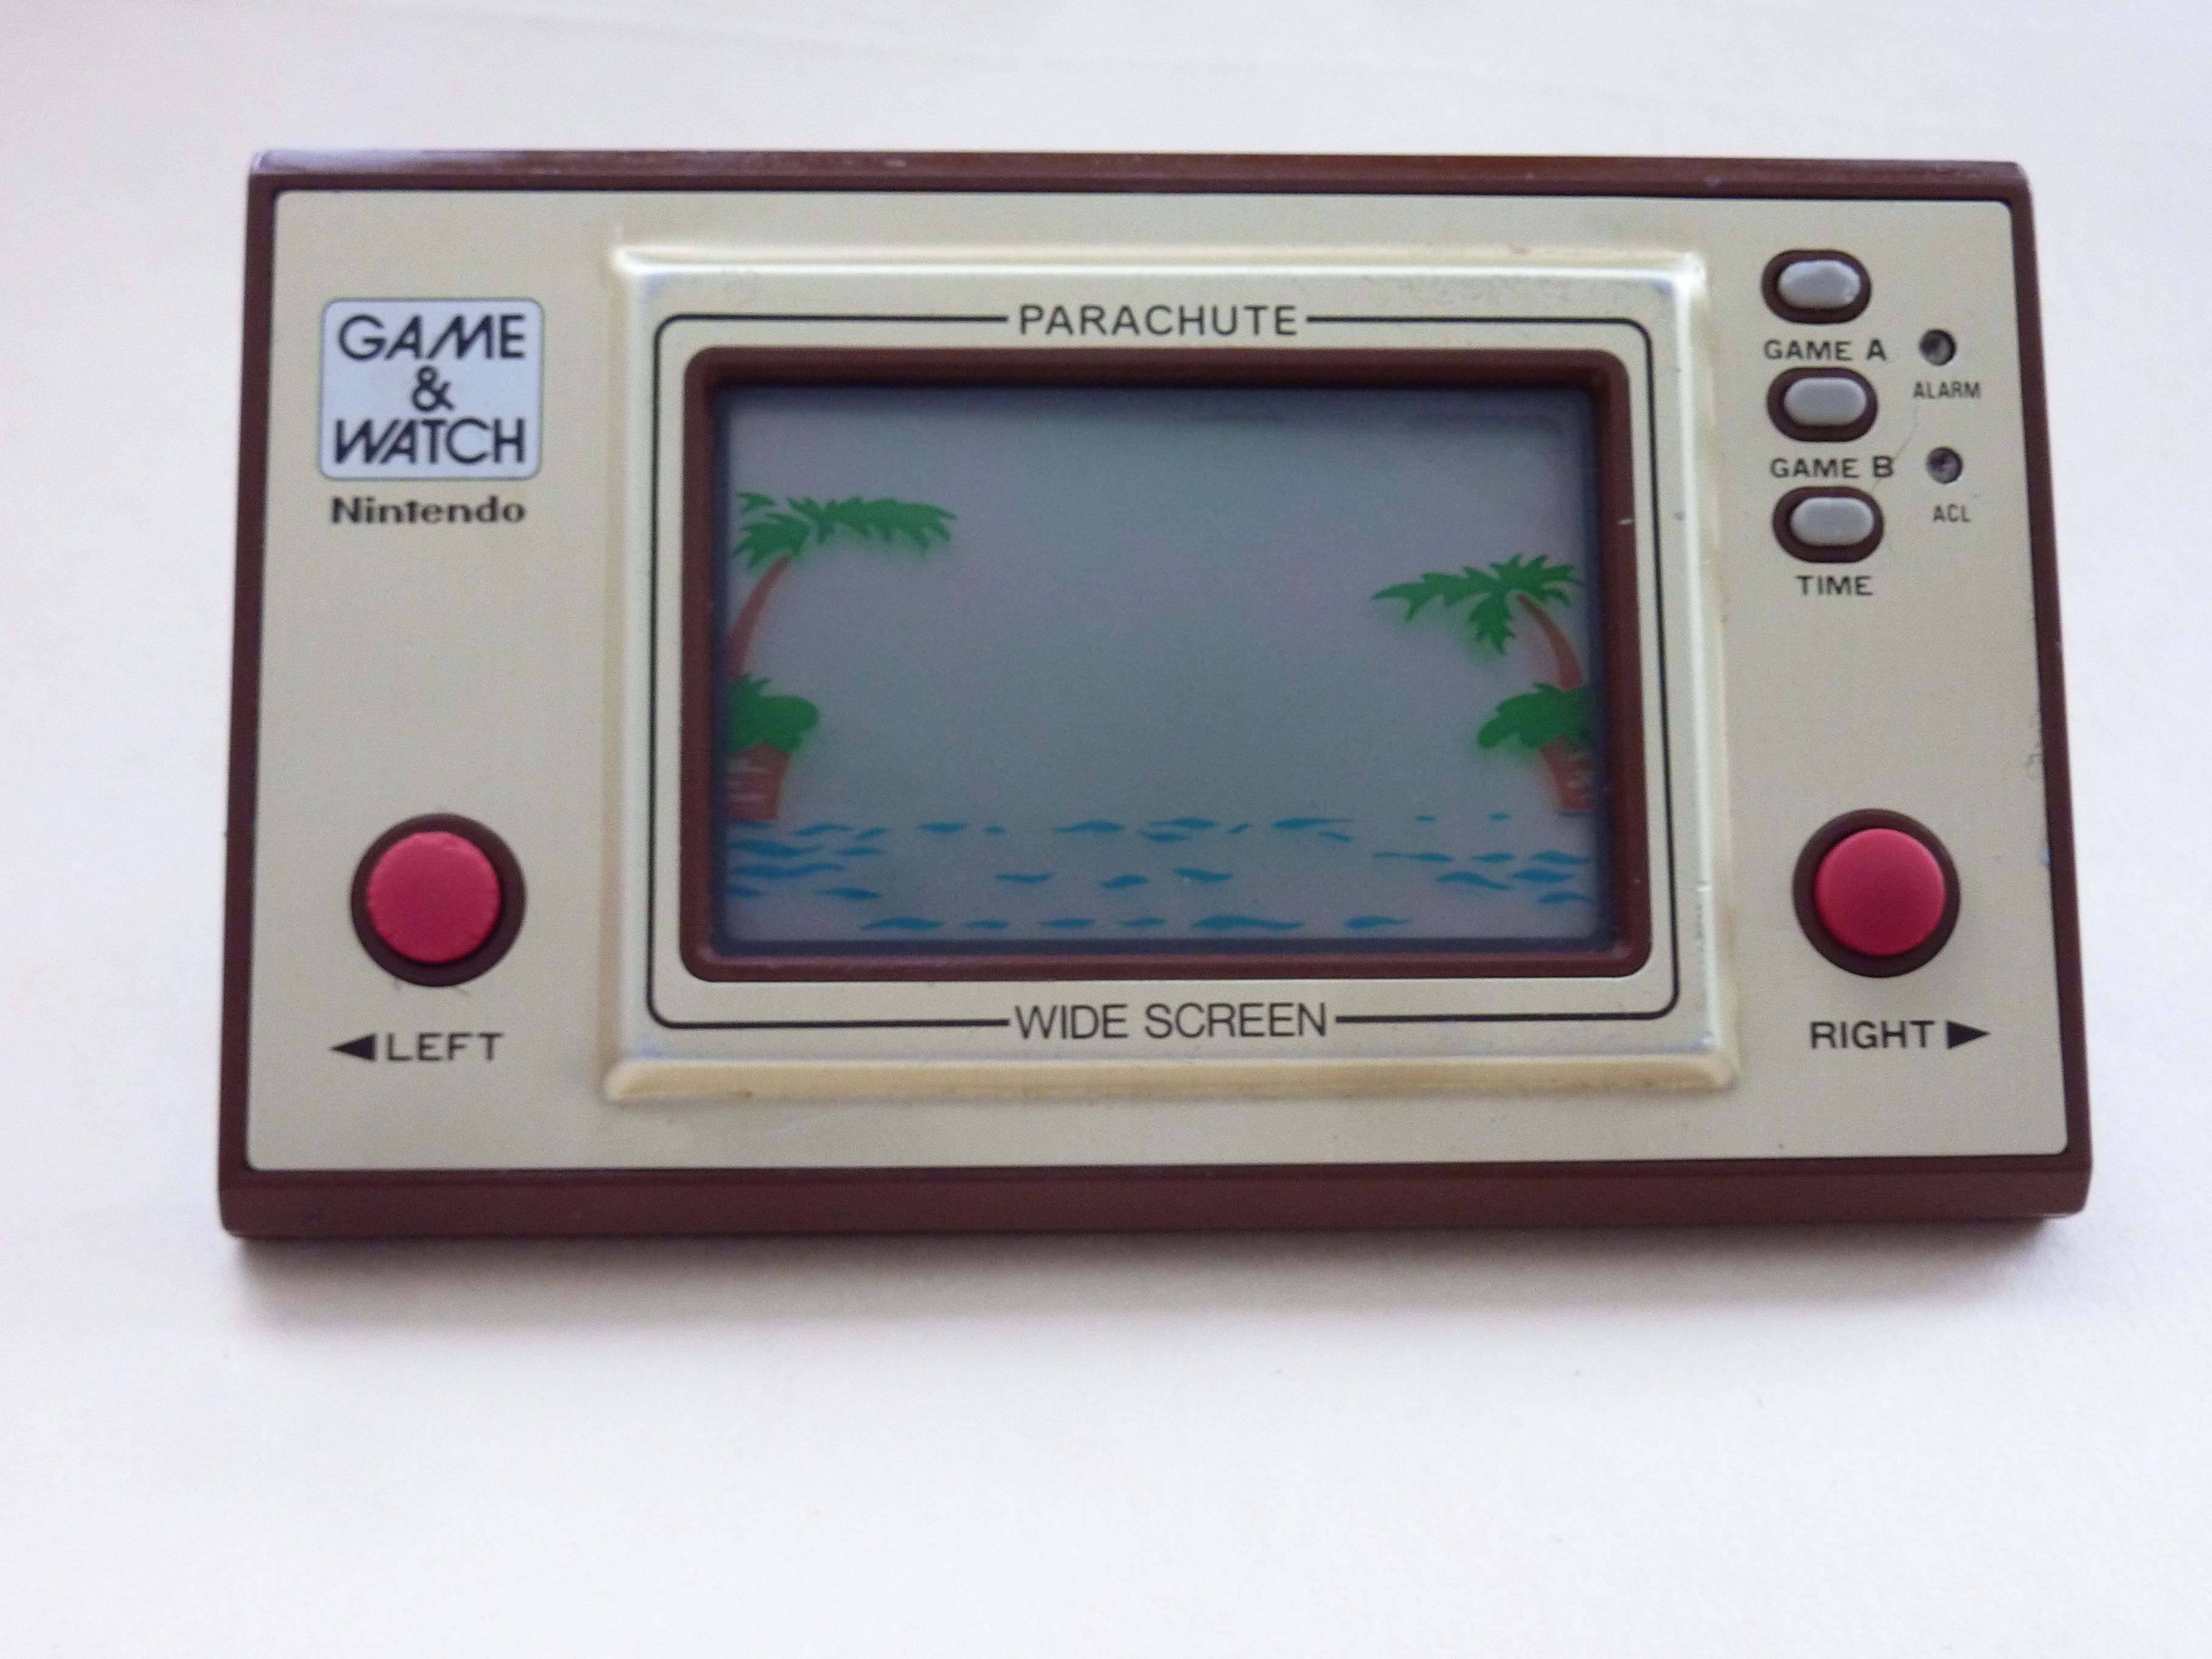 Game and Watch, parachute game. Image from wikipedia.